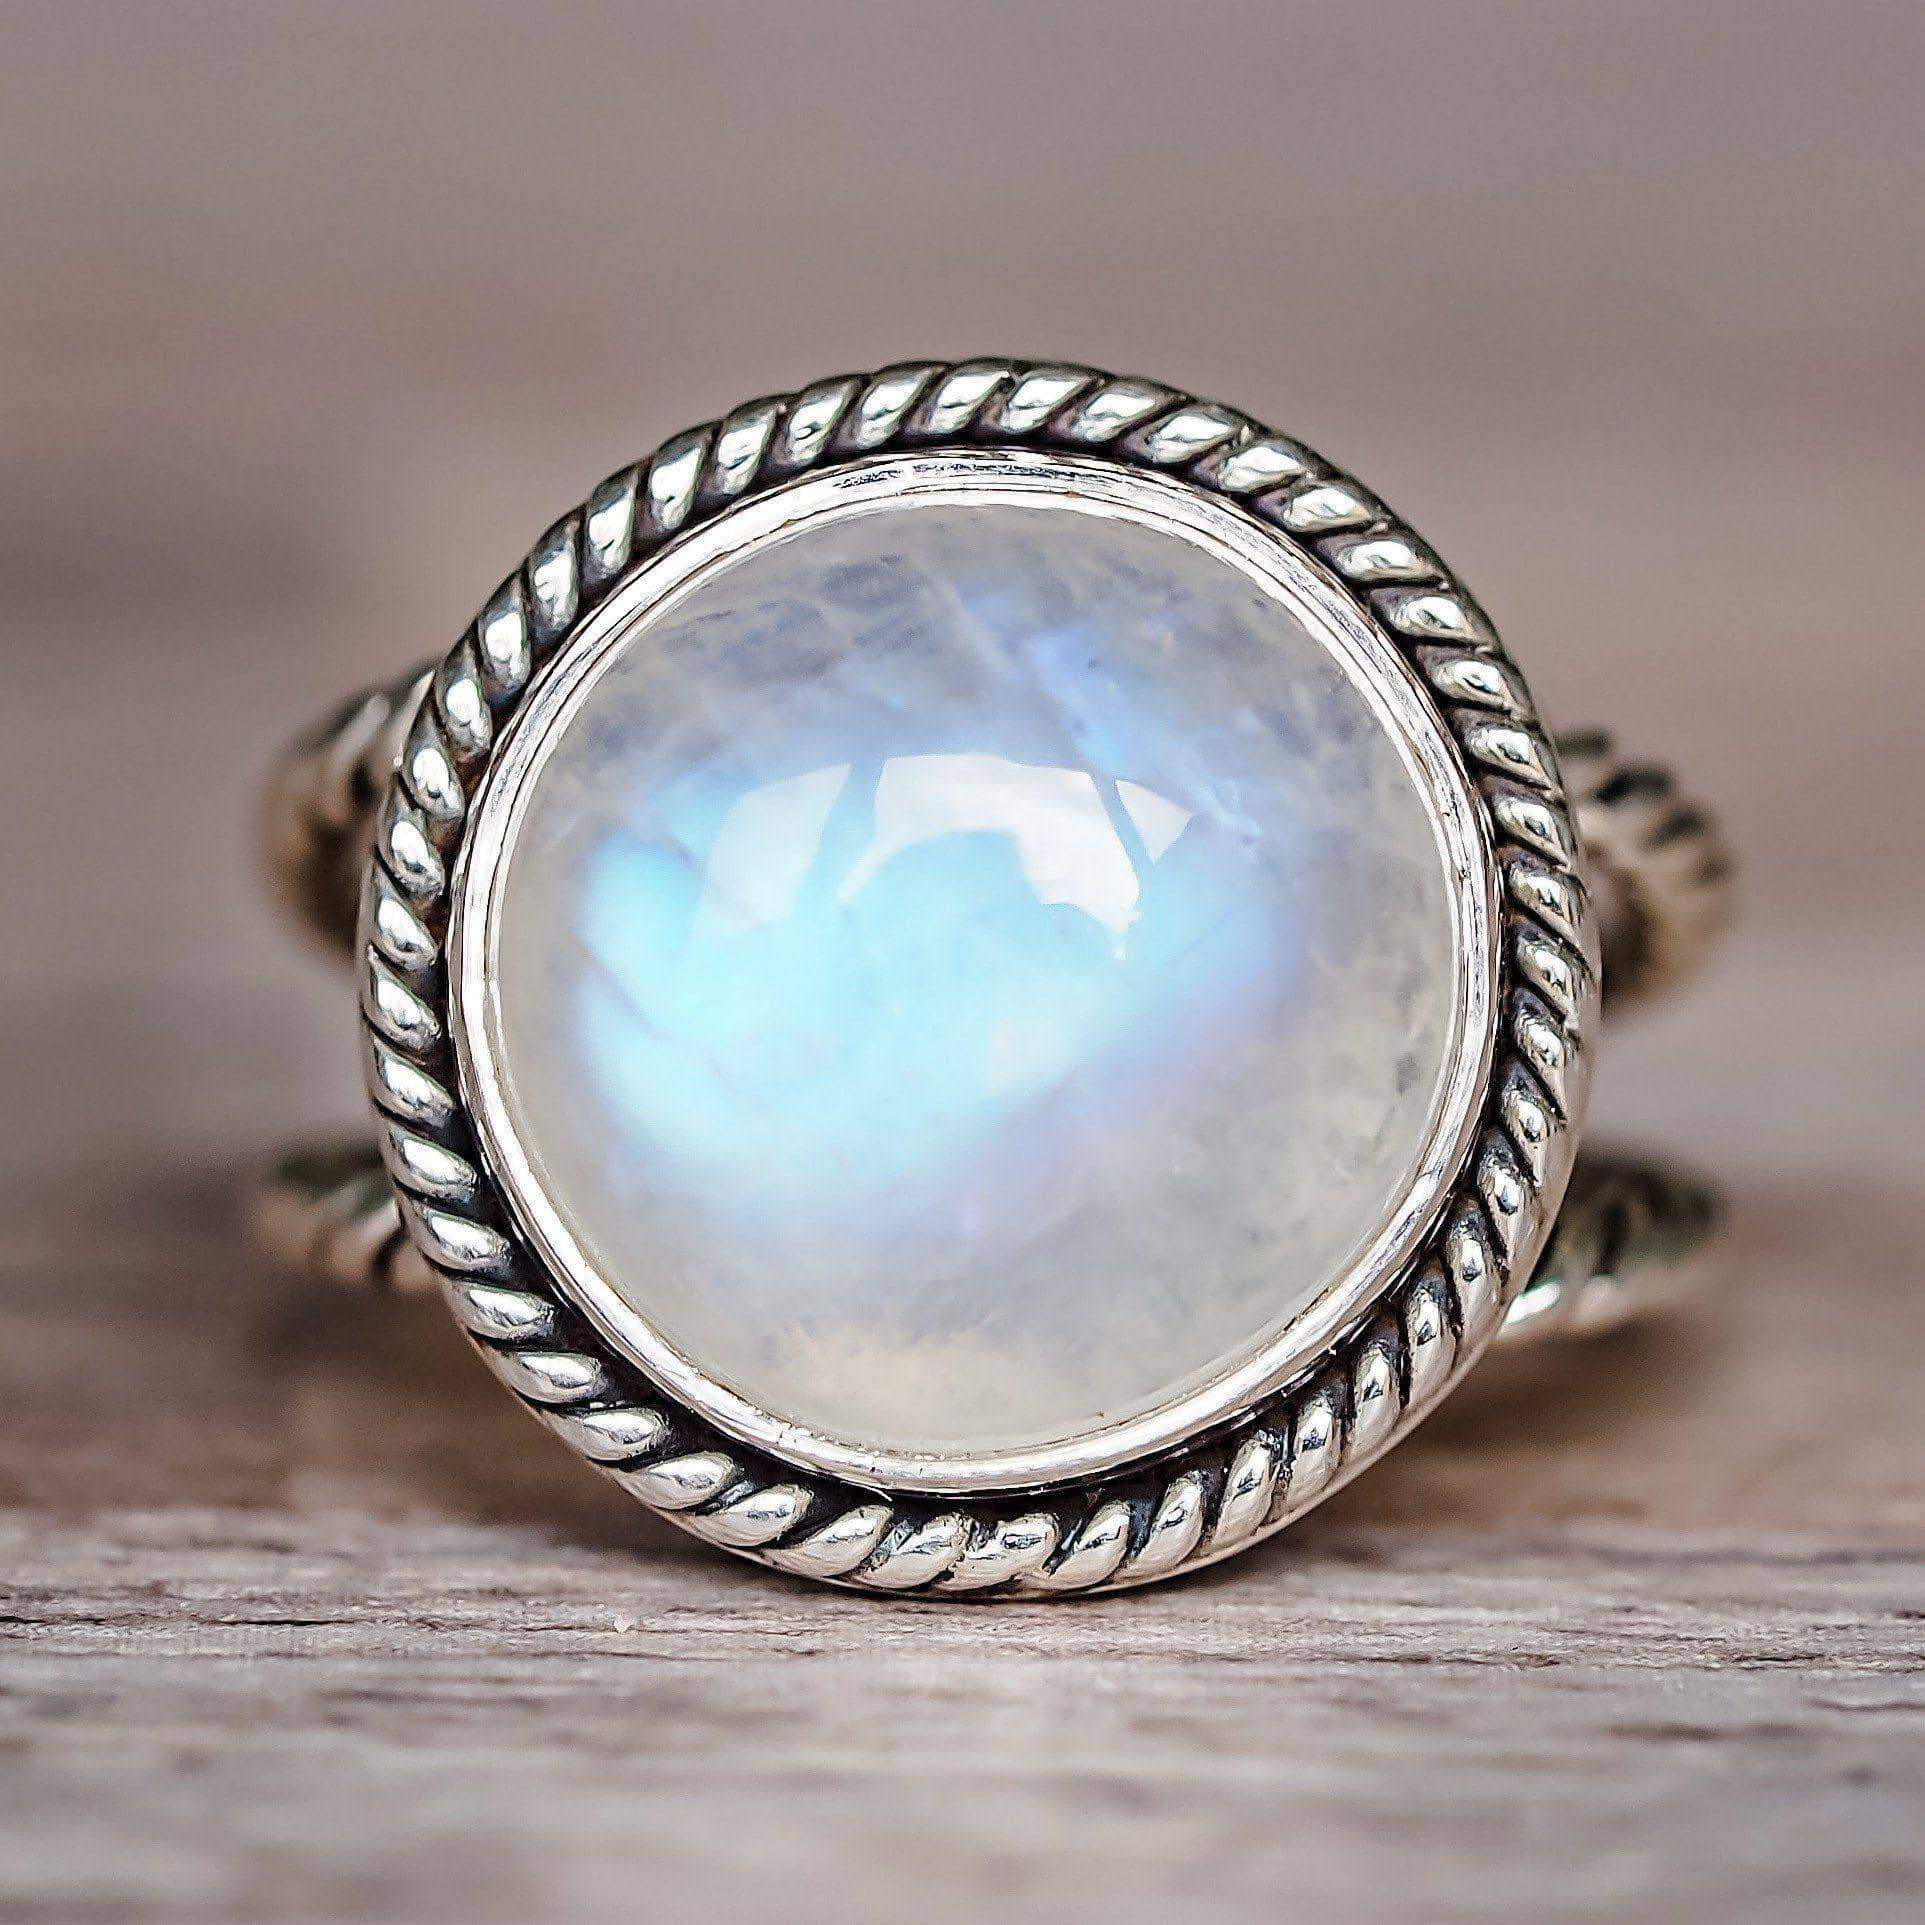 Silver Double Twist Moonstone Ring - www.indieandharper.com - bohemian gypsy festival jewellery boho jewelry - indie and harper